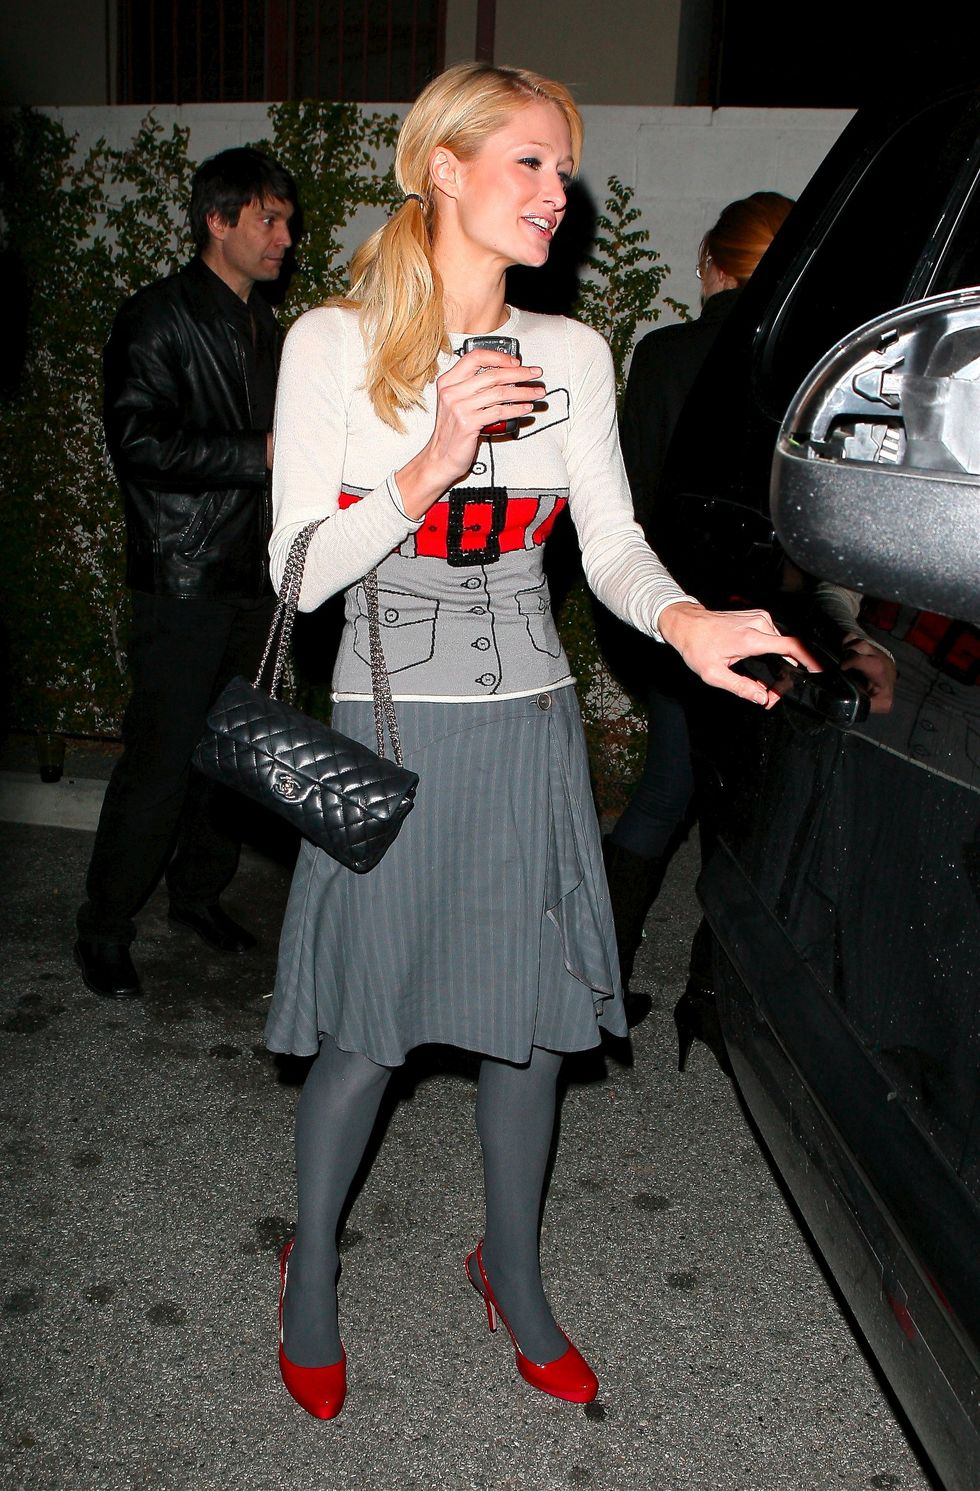 paris-hilton-at-hyde-nightclub-in-los-angeles-01